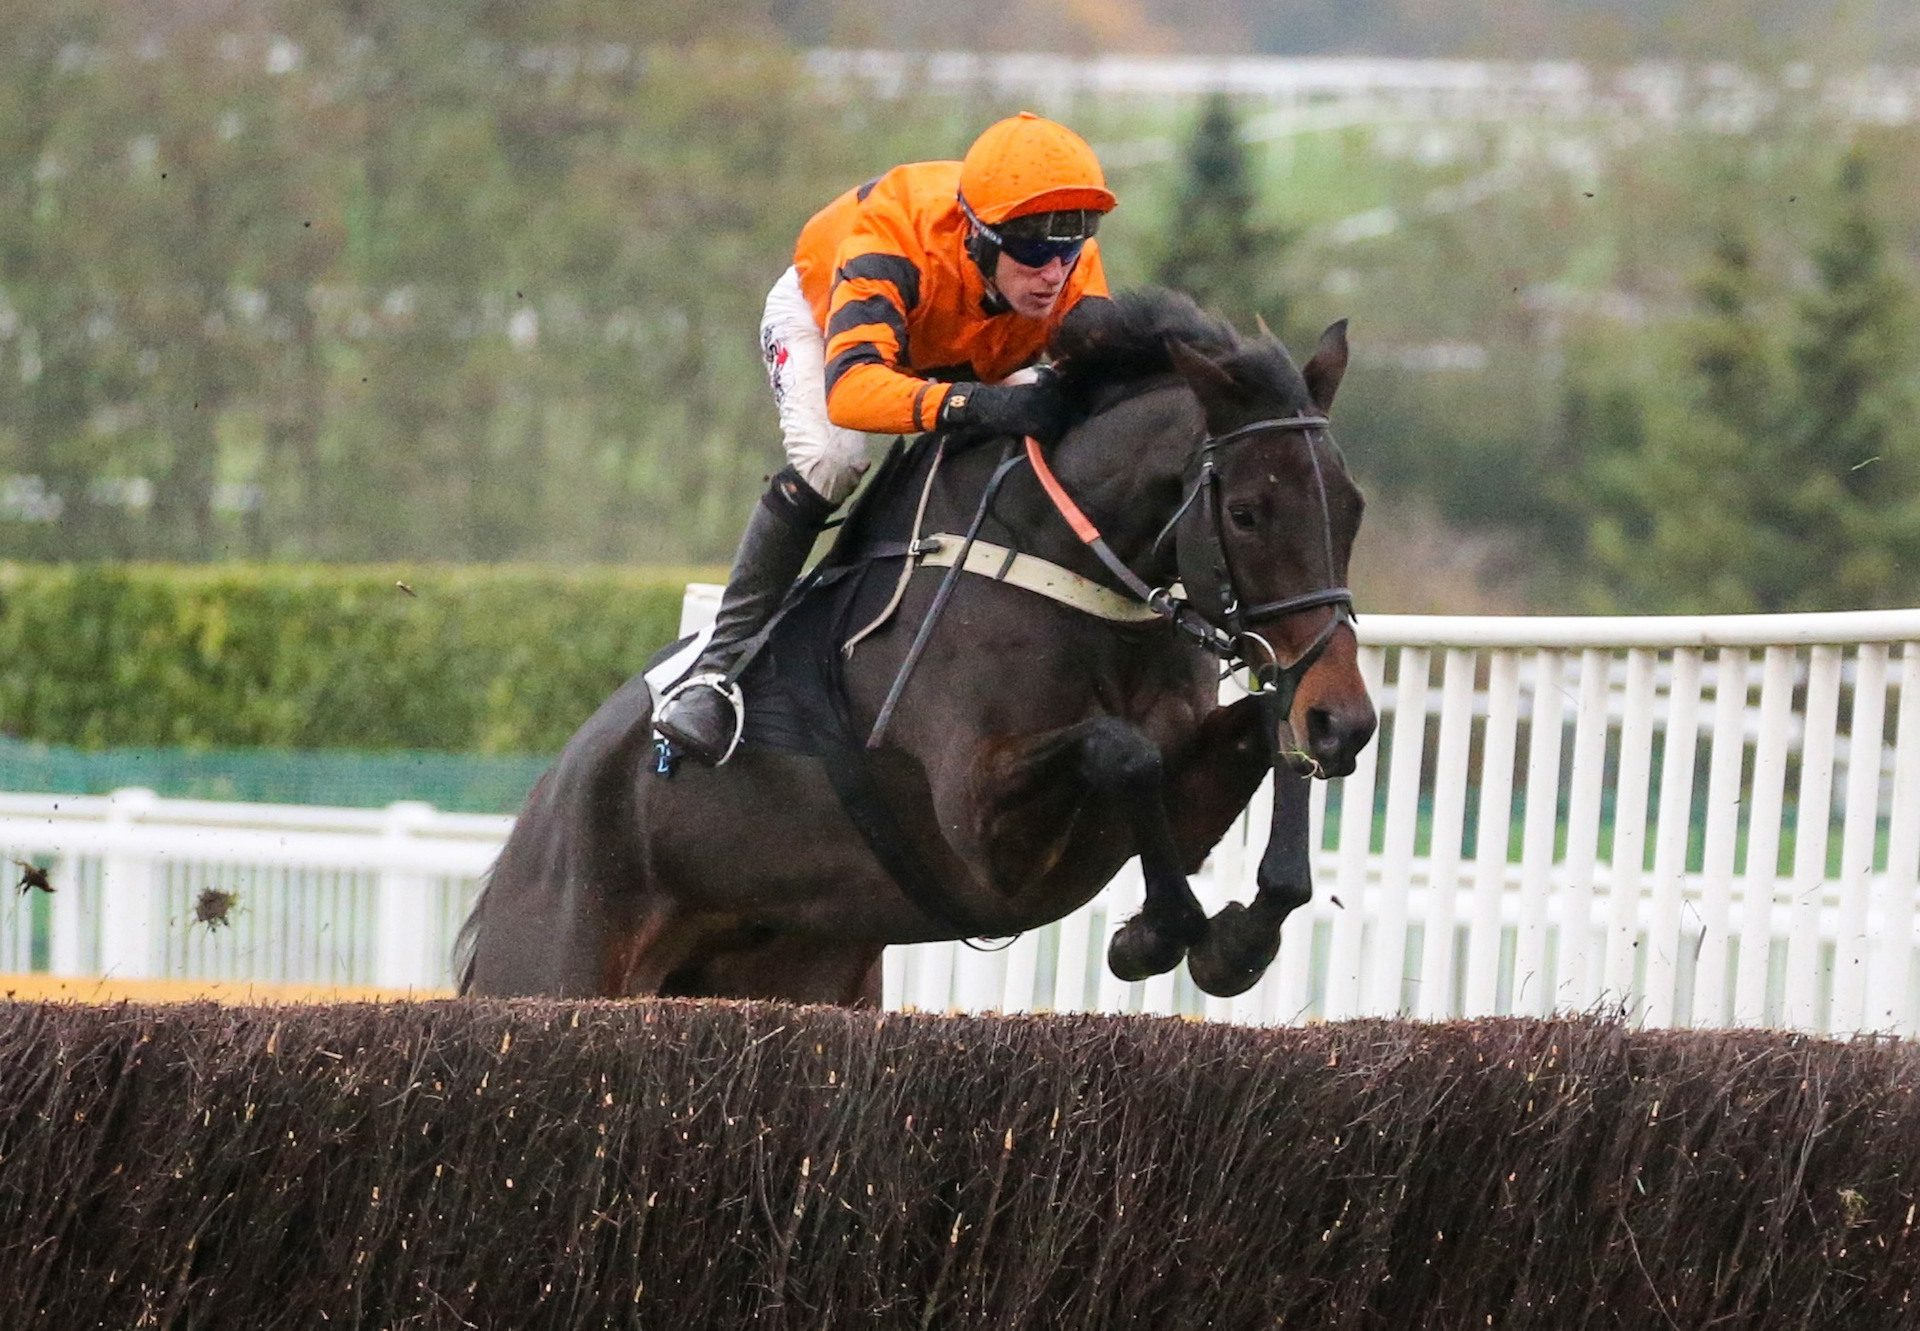 West Approach (Westerner) winning a Grade 3 chase at Cheltenham